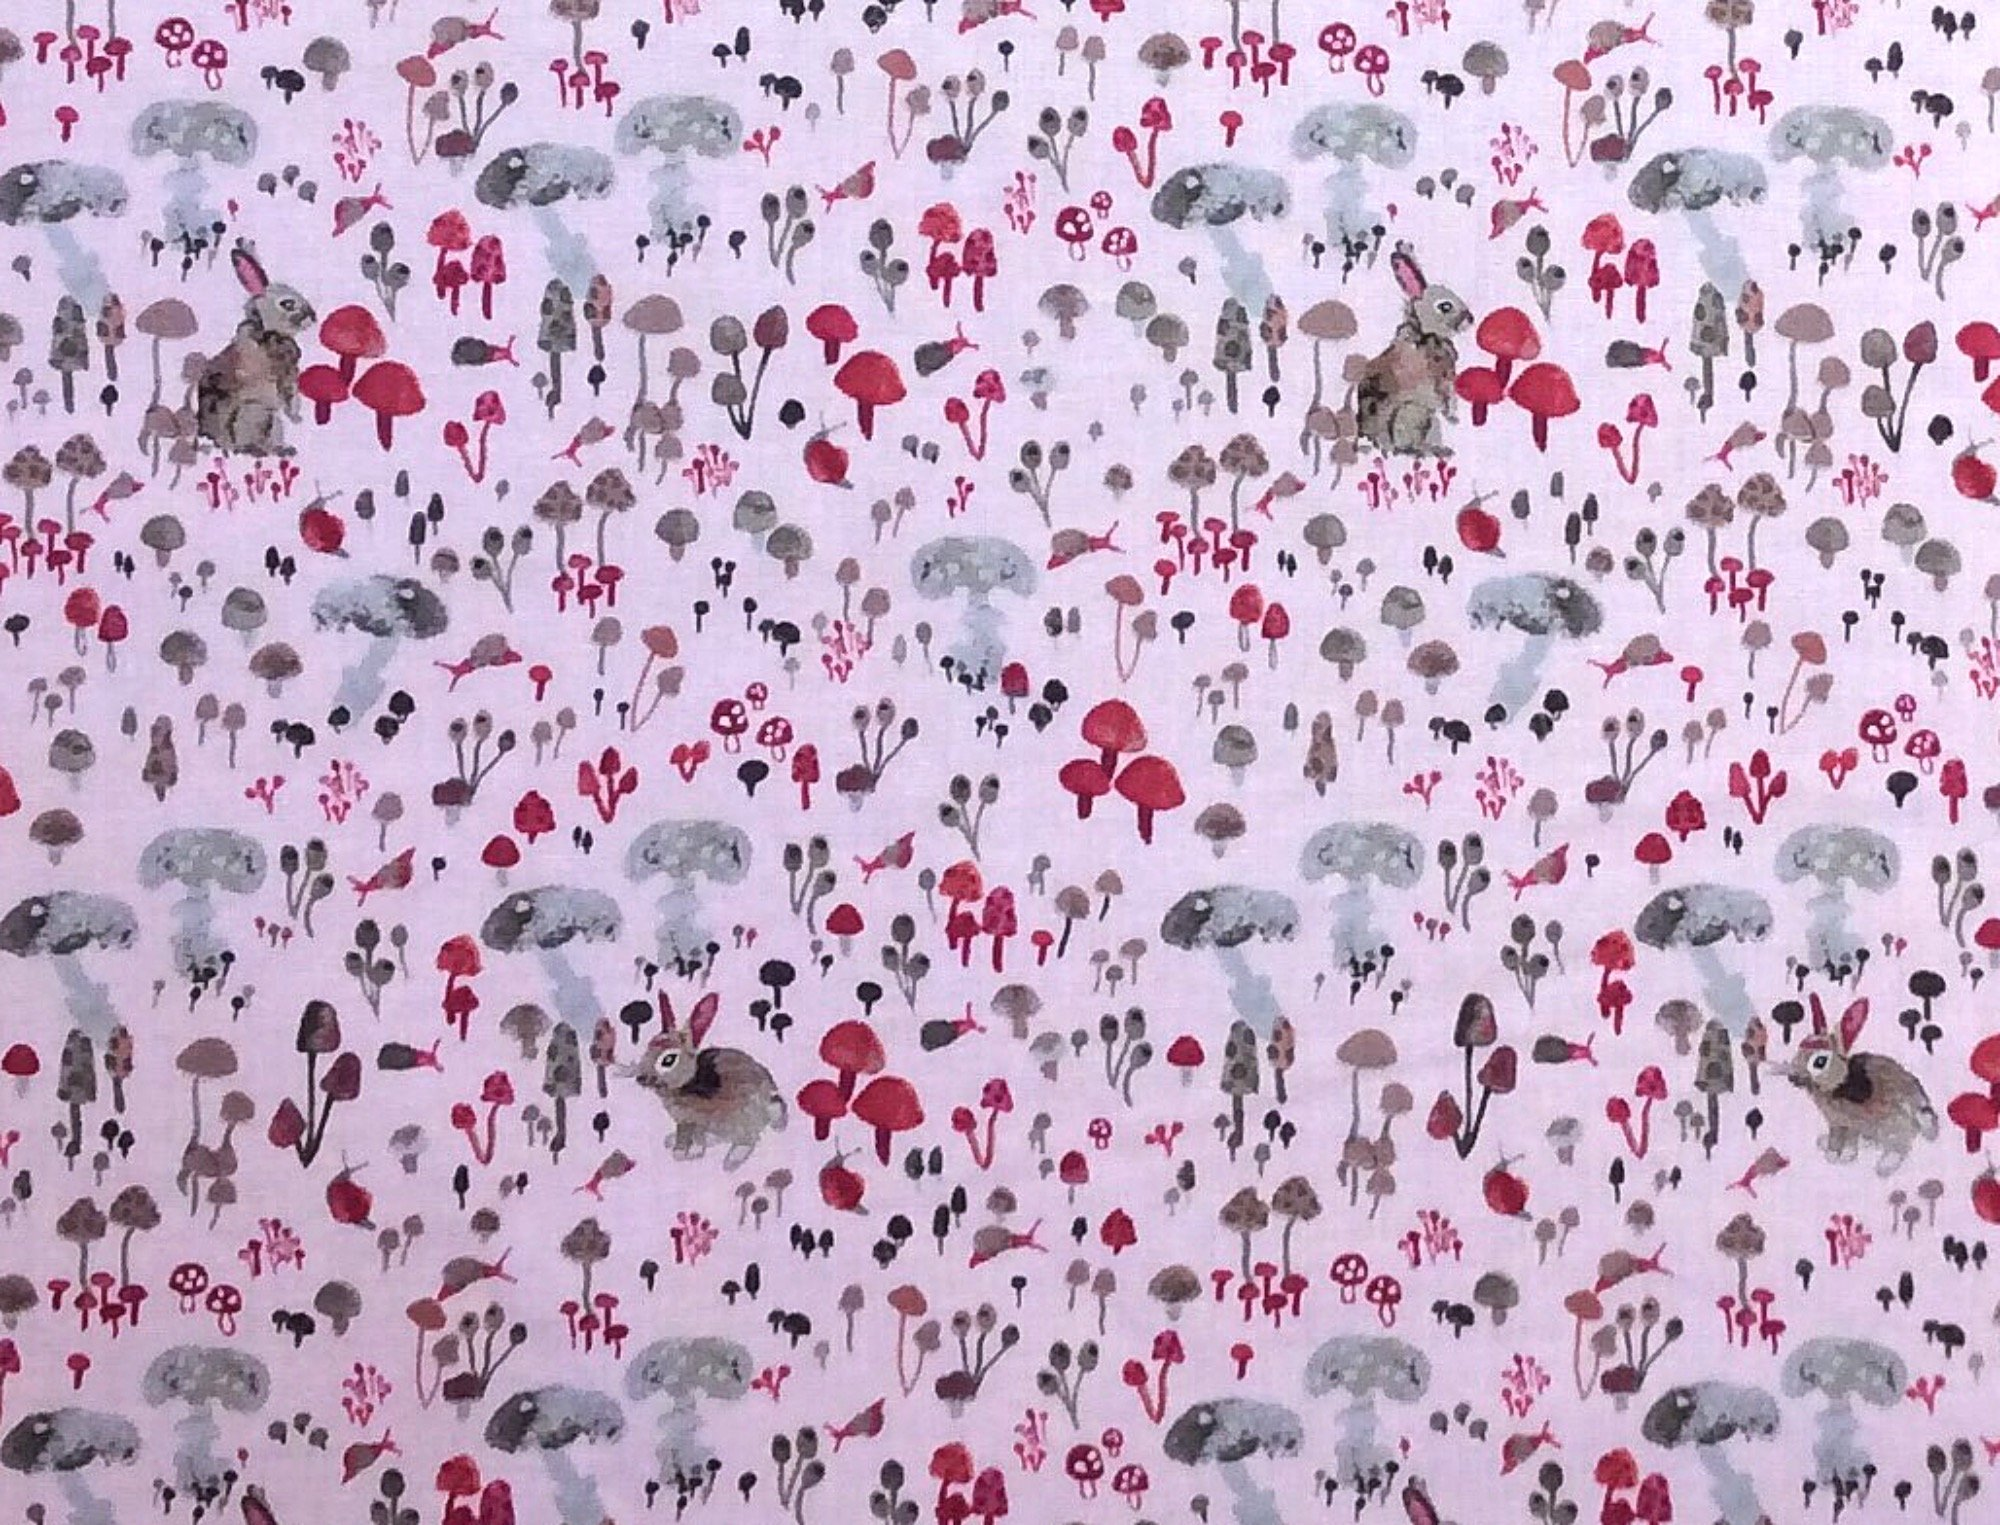 Enchanted Forest Bunny Rabbit Forest Mushroom Floral Betsy Olmsted Watercolor Illustration Cotton Quilt Fabric WI117